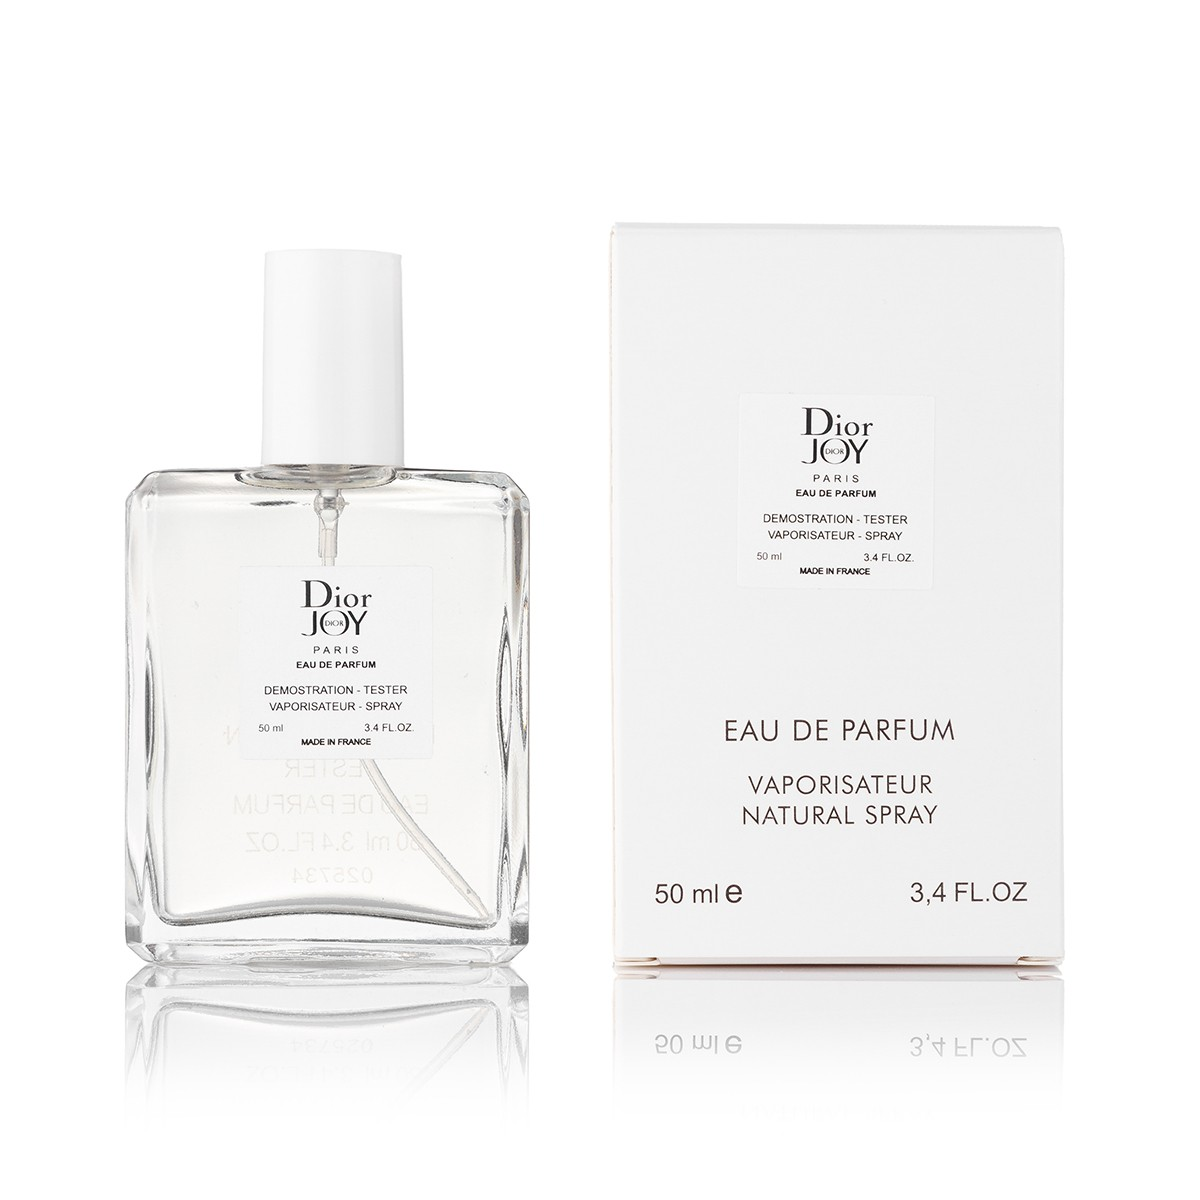 Christian Dior Joy By Dior edp 50ml demonstration tester